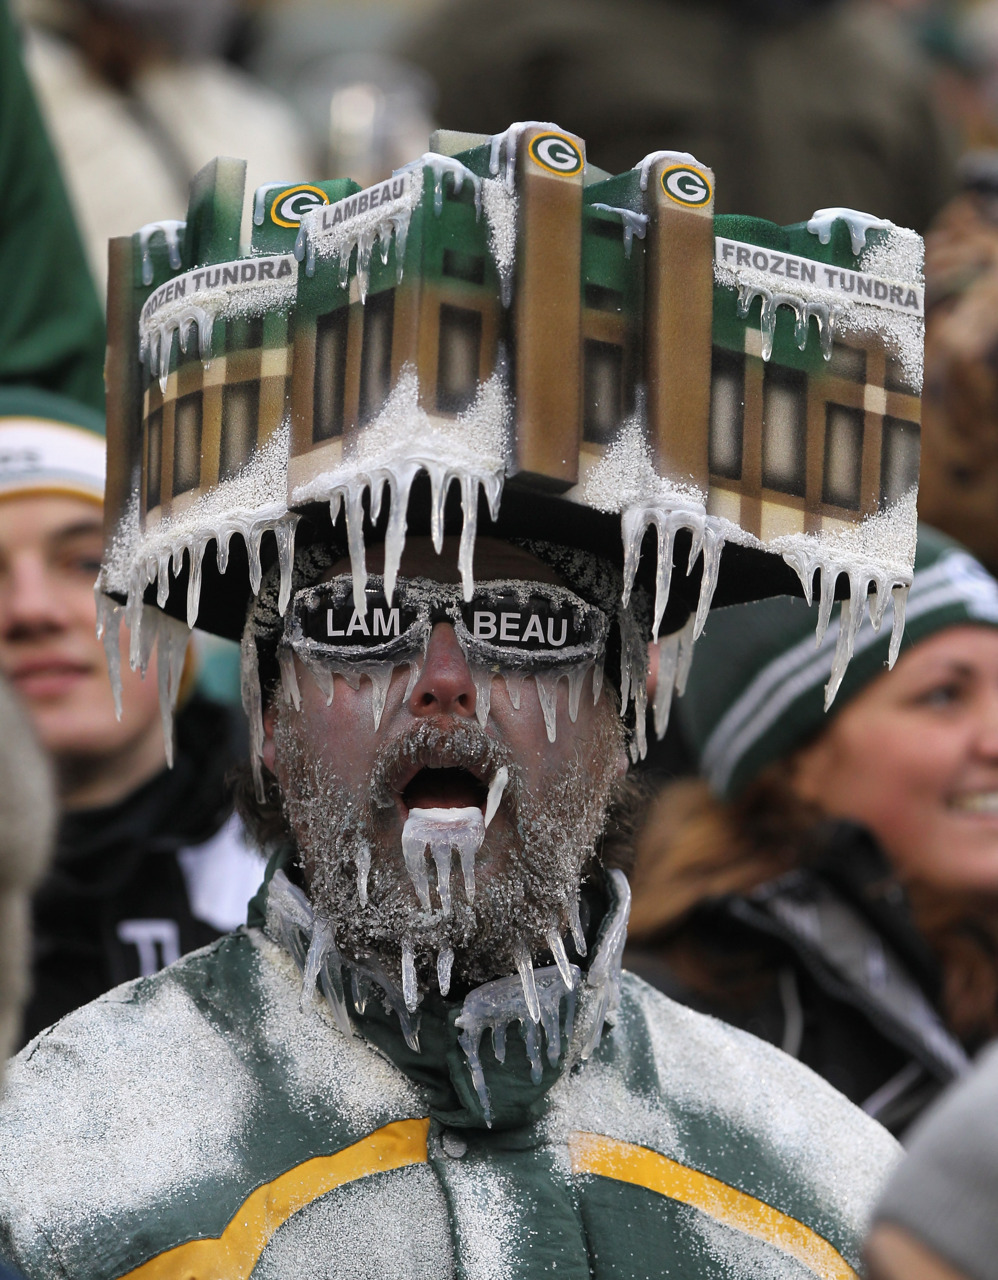 Frozen tundraWith Aaron Rodgers resting up for the playoffs, Matt Flynn had to be ready to run the Green Bay Packers offence.Was he ever.With Rodgers bundled up on the sideline in cold and windy conditions at Lambeau Field, Flynn set franchise records with 480 yards passing and six touchdowns—the final one to Jermichael Finley with 1:10 left, giving the Packers a 45-41 victory over the Detroit Lions in a wild regular-season finale Sunday.Photo: Jonathan Daniel/Getty Images